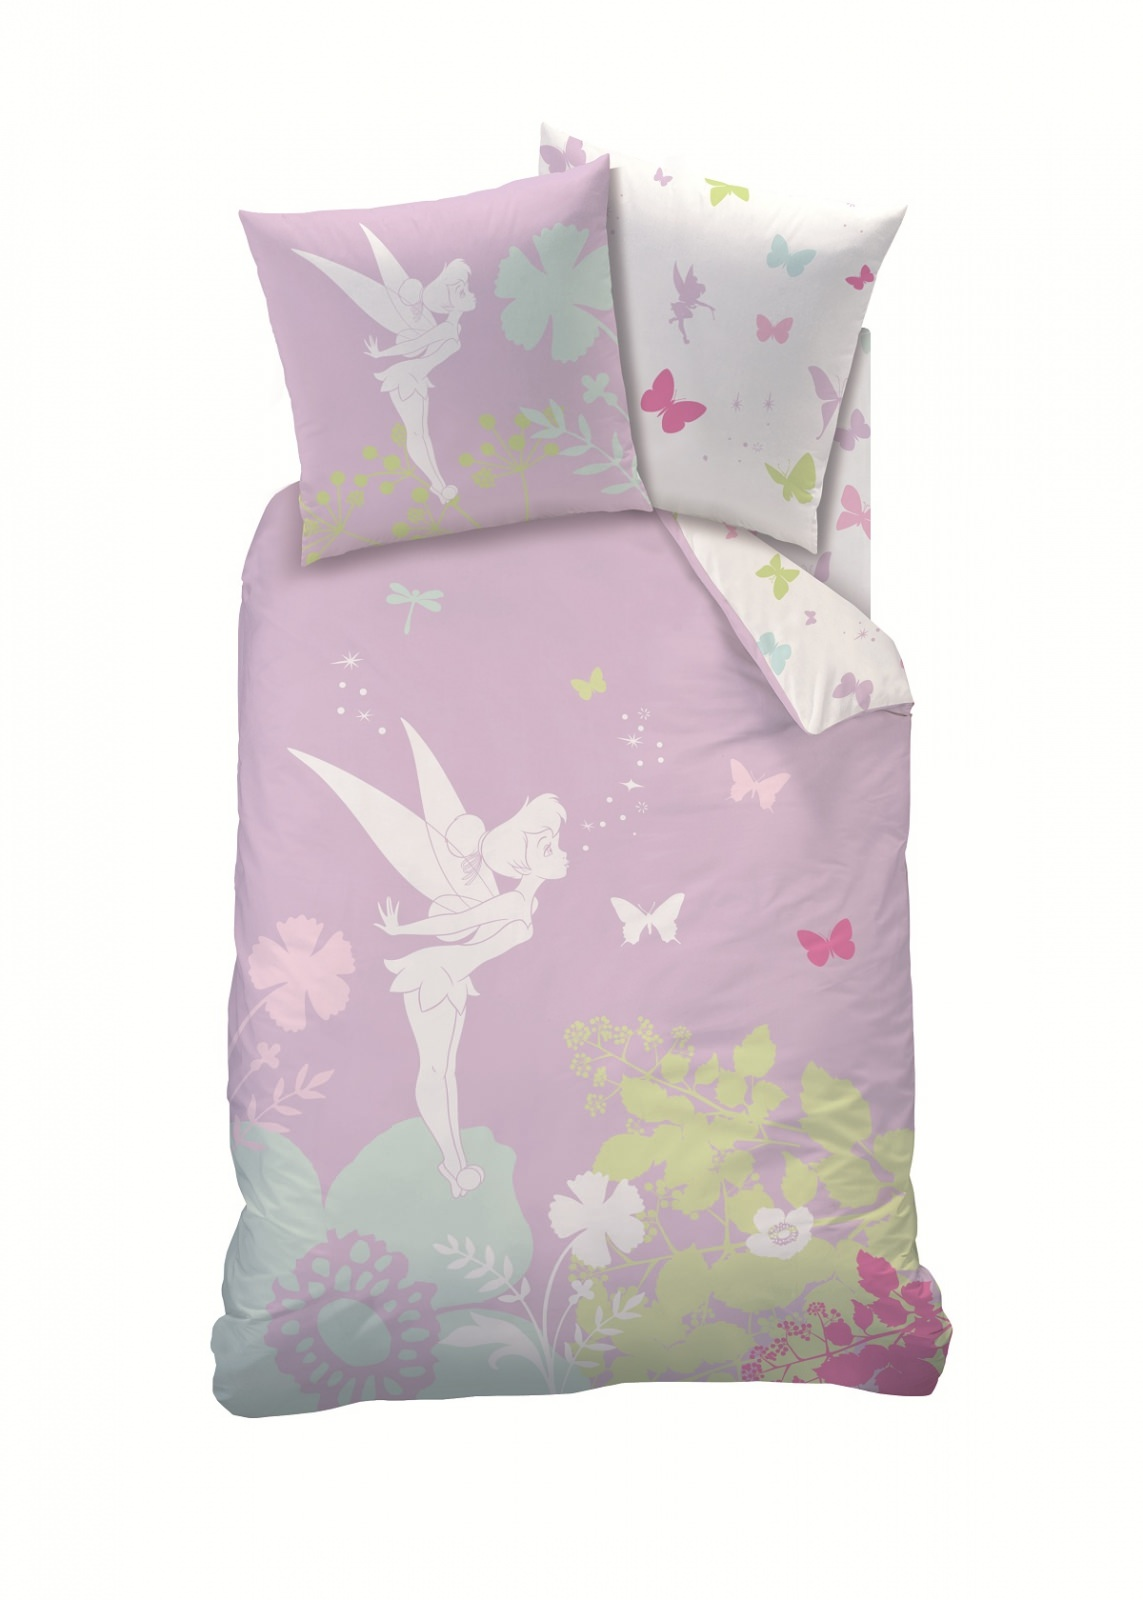 housse de couette disney fairies f e clochette 140x 200cm parure de lit moolight shadow. Black Bedroom Furniture Sets. Home Design Ideas